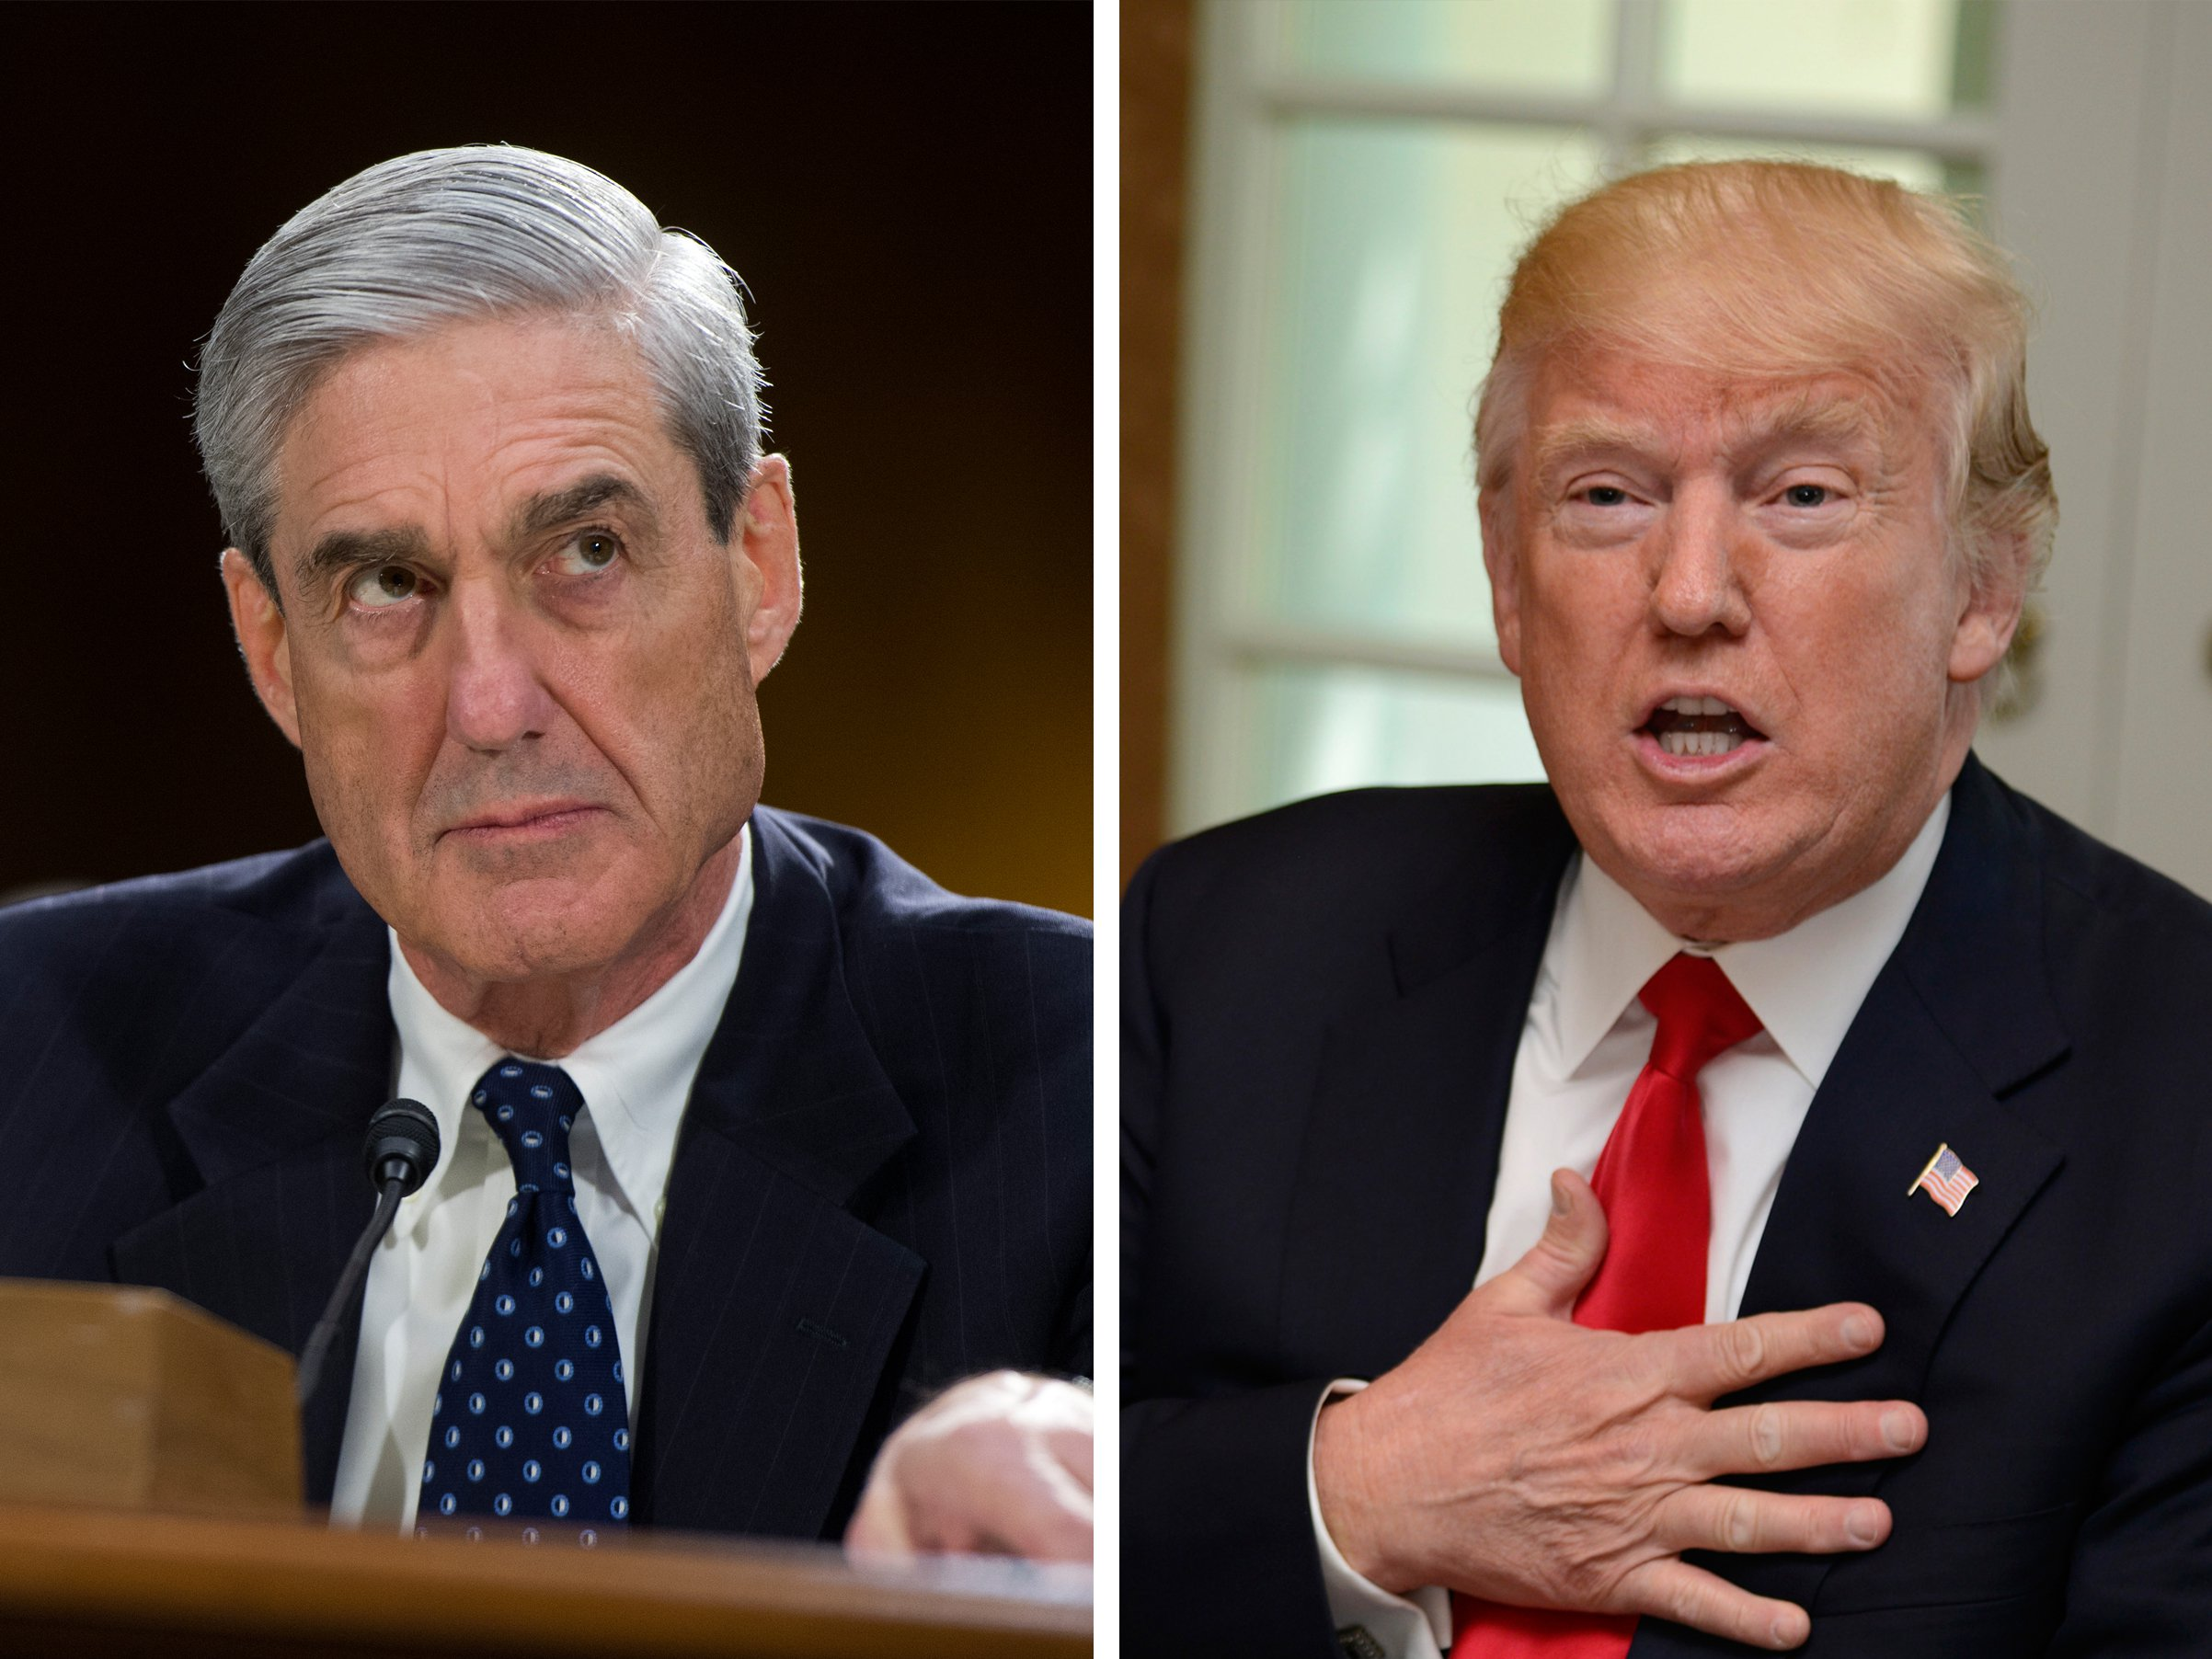 Mueller Informs Trump Hes Not Criminal Target in Russia Investigation